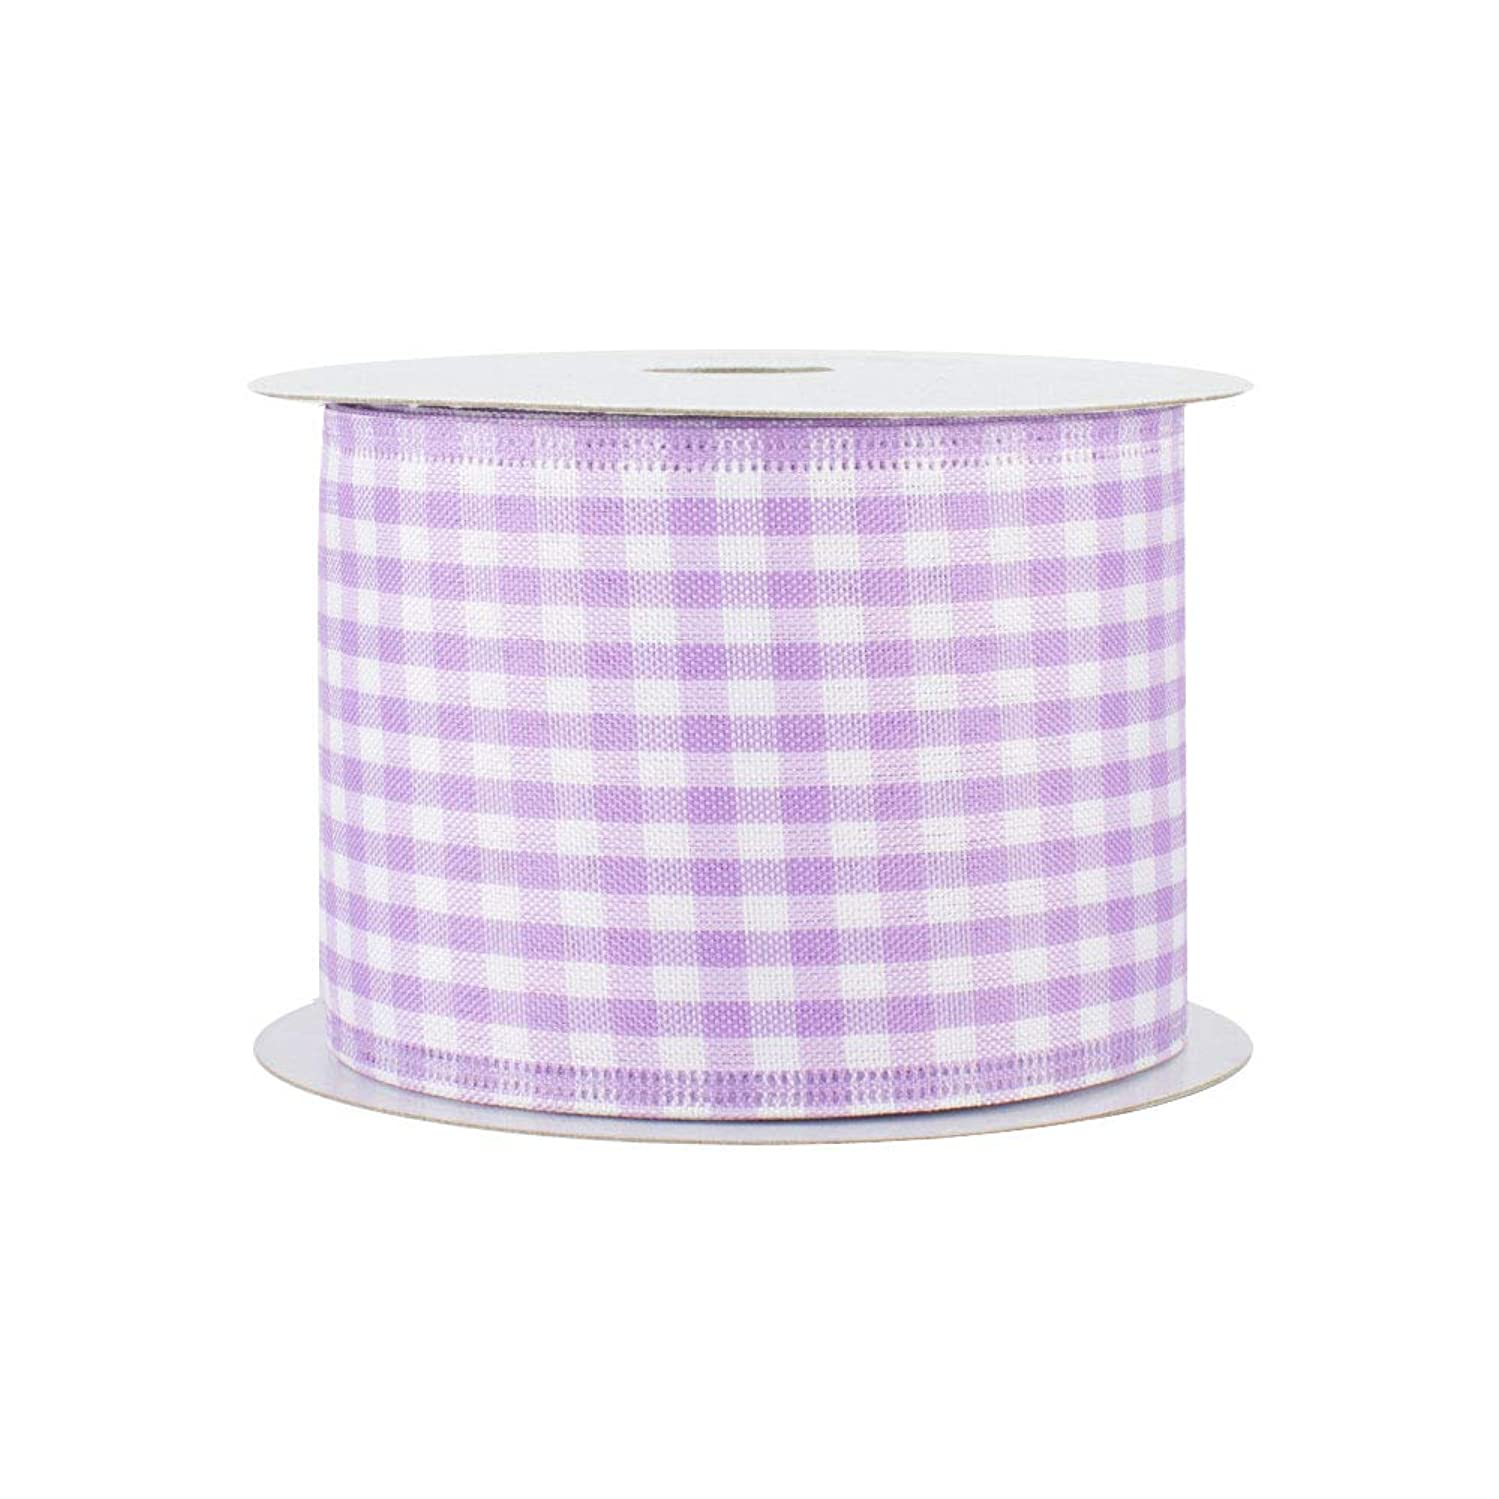 Lavender Gingham Wired Edge Ribbon - 2 1/2 Inch x 10 Yards, Valentine's Day, Spring, Christmas Decor, Birthday, Rustic Wedding, Farmhouse Party, Picnic, Baby Shower, Summer